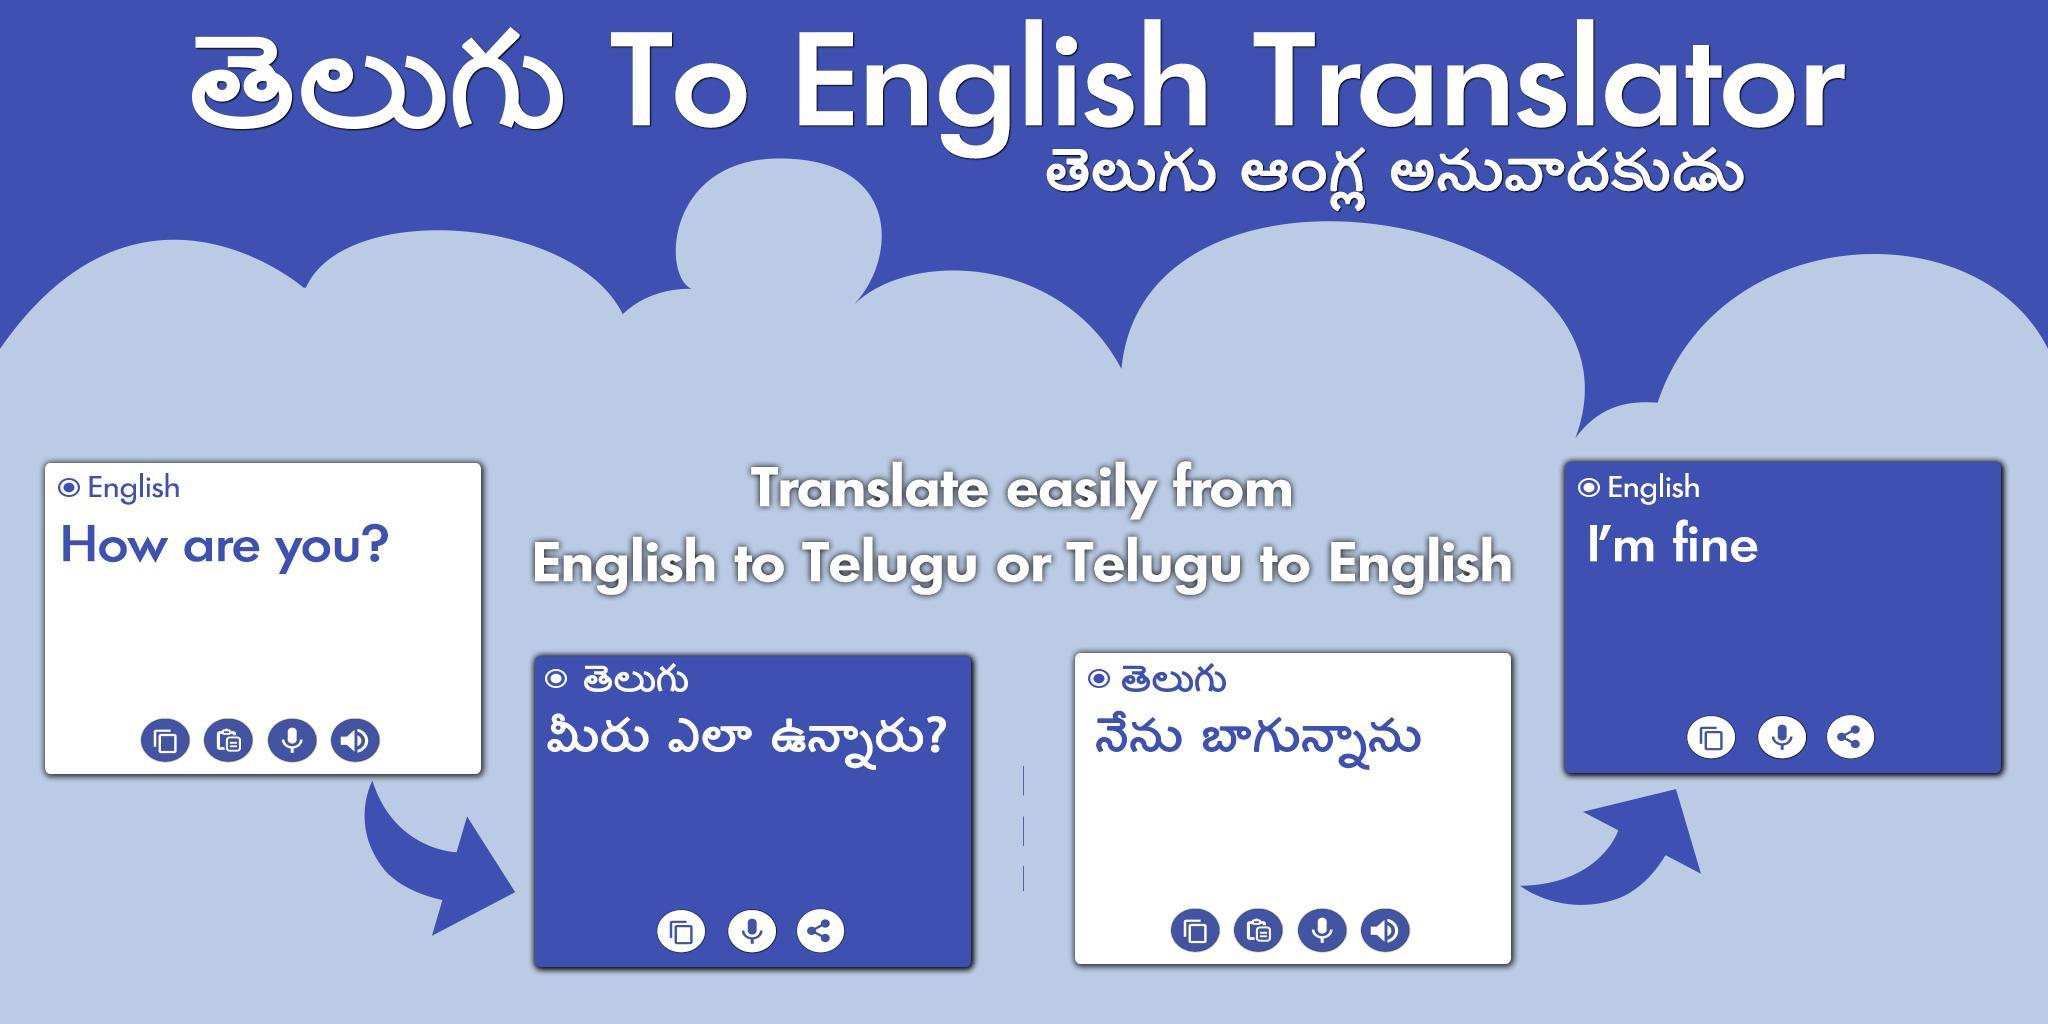 Telugu English Translator - Telugu Dictionary for Android - APK Download